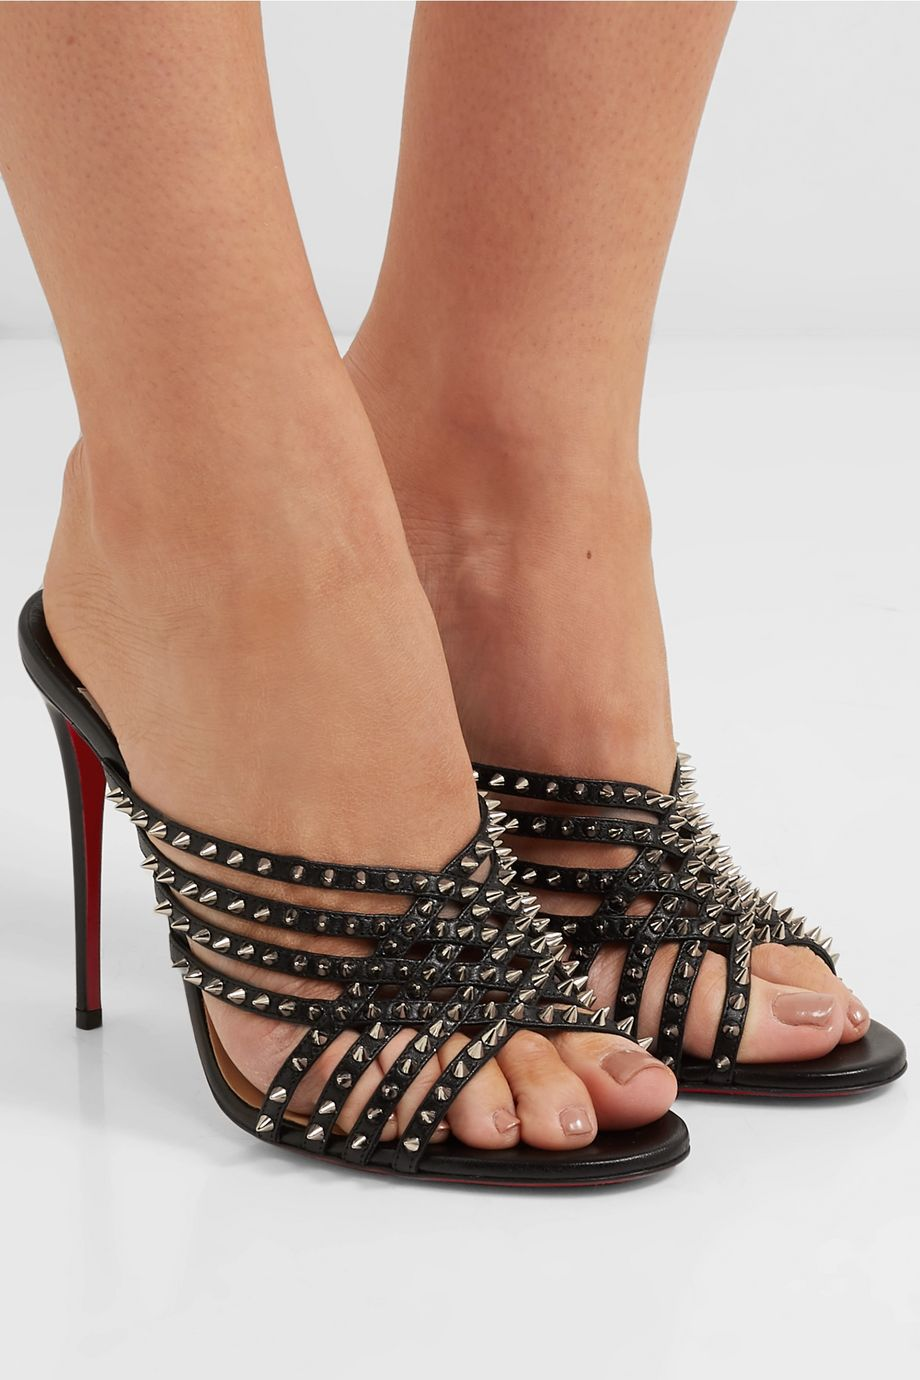 Christian Louboutin Marthaspike 100 leather mules